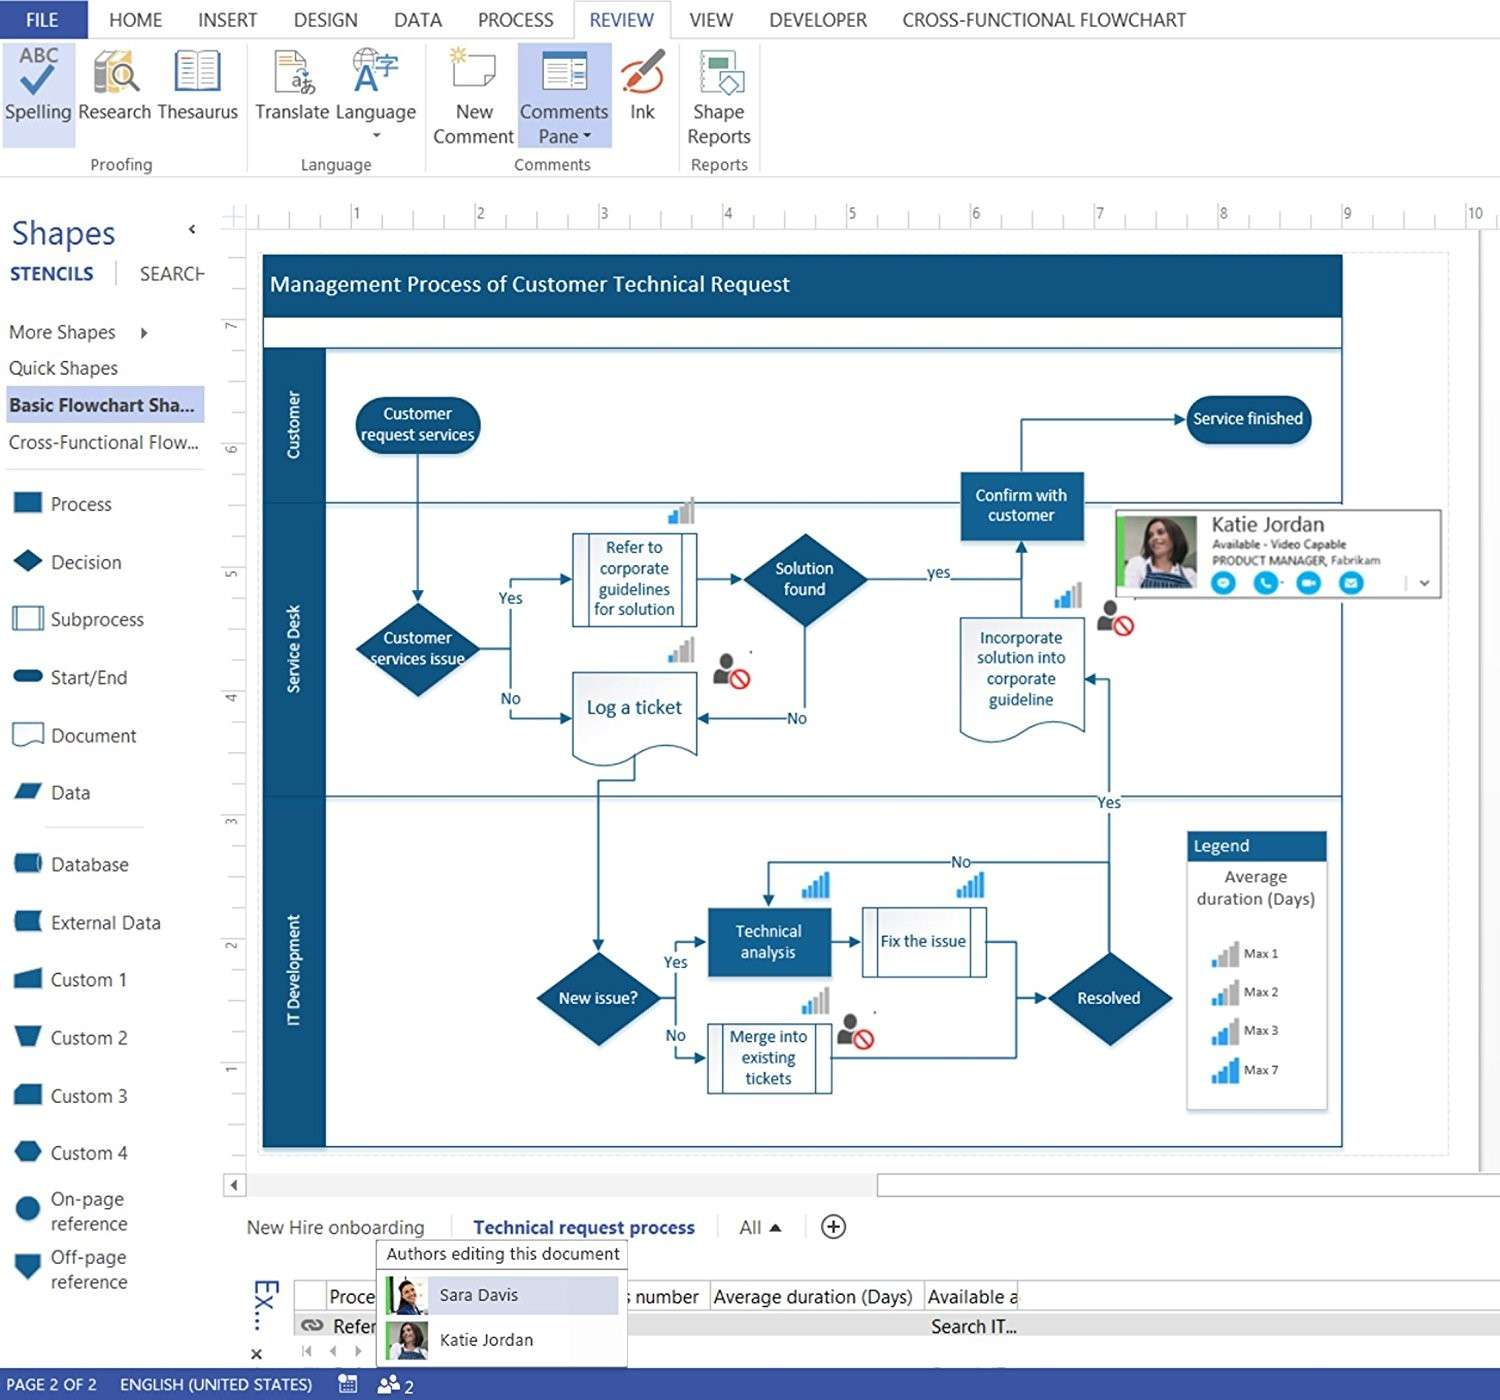 microsoft visio flowchart Importing and linking data from excel into visio note: in order to link and import data into visio, you must be using visio 2007 professional edition to import an excel file into visio.